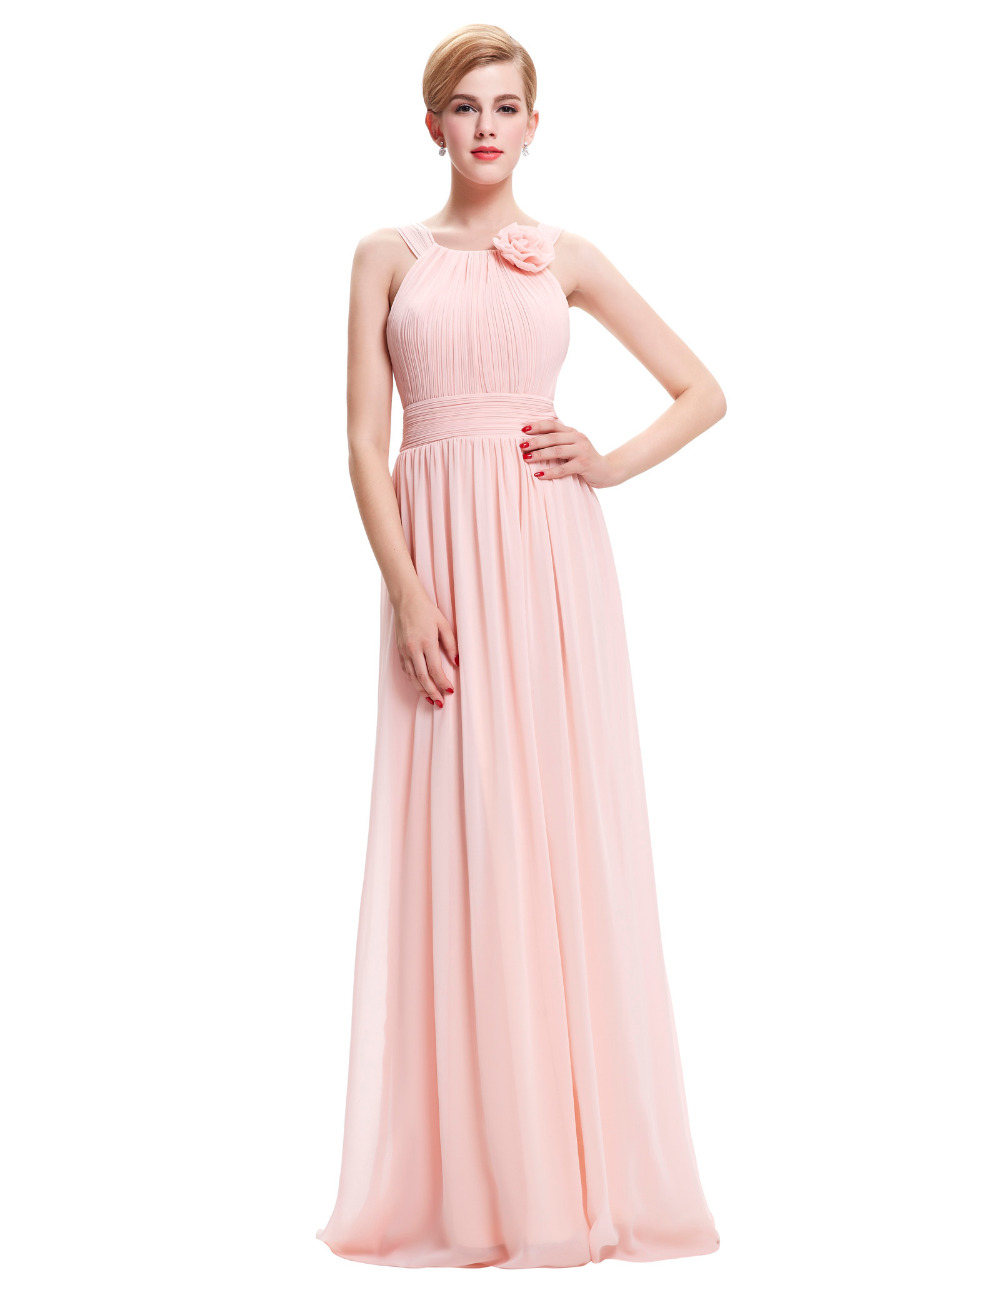 Ladies Flower Applique Pink Evening Dresses Long 2016